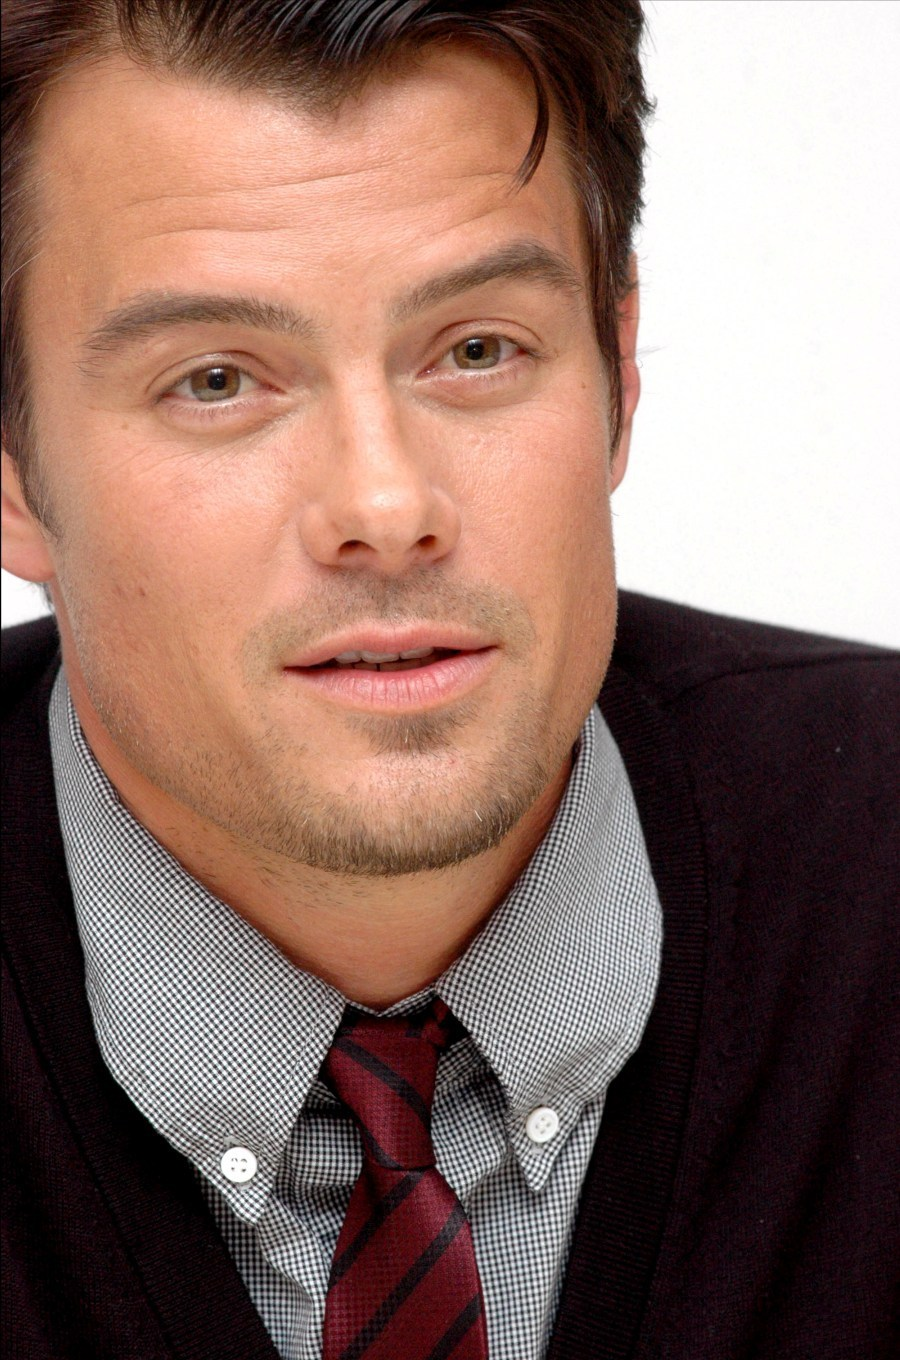 https://i0.wp.com/images4.fanpop.com/image/photos/19100000/Josh-Duhamel-photo-HQ-josh-duhamel-19189489-900-1360.jpg